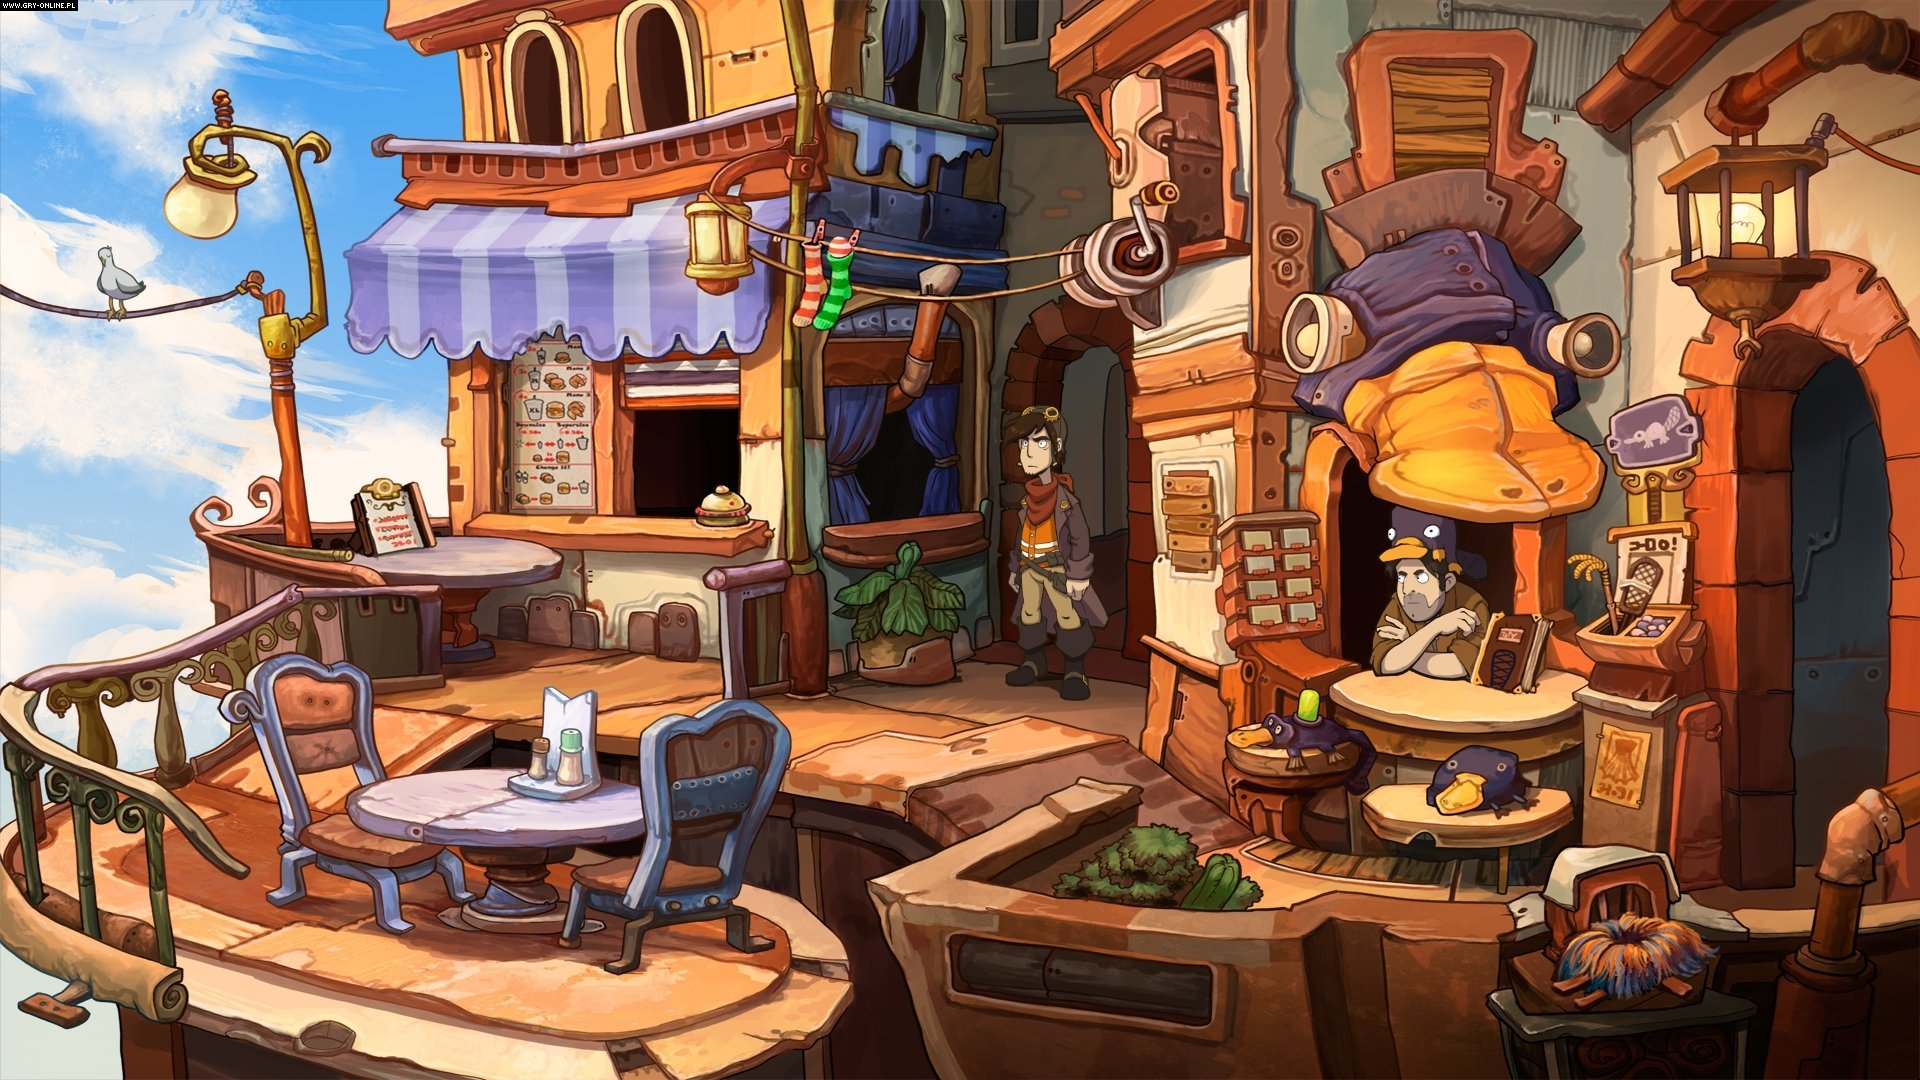 Chaos on Deponia PC, PS4, XONE Gry Screen 5/9, Daedalic Entertainment